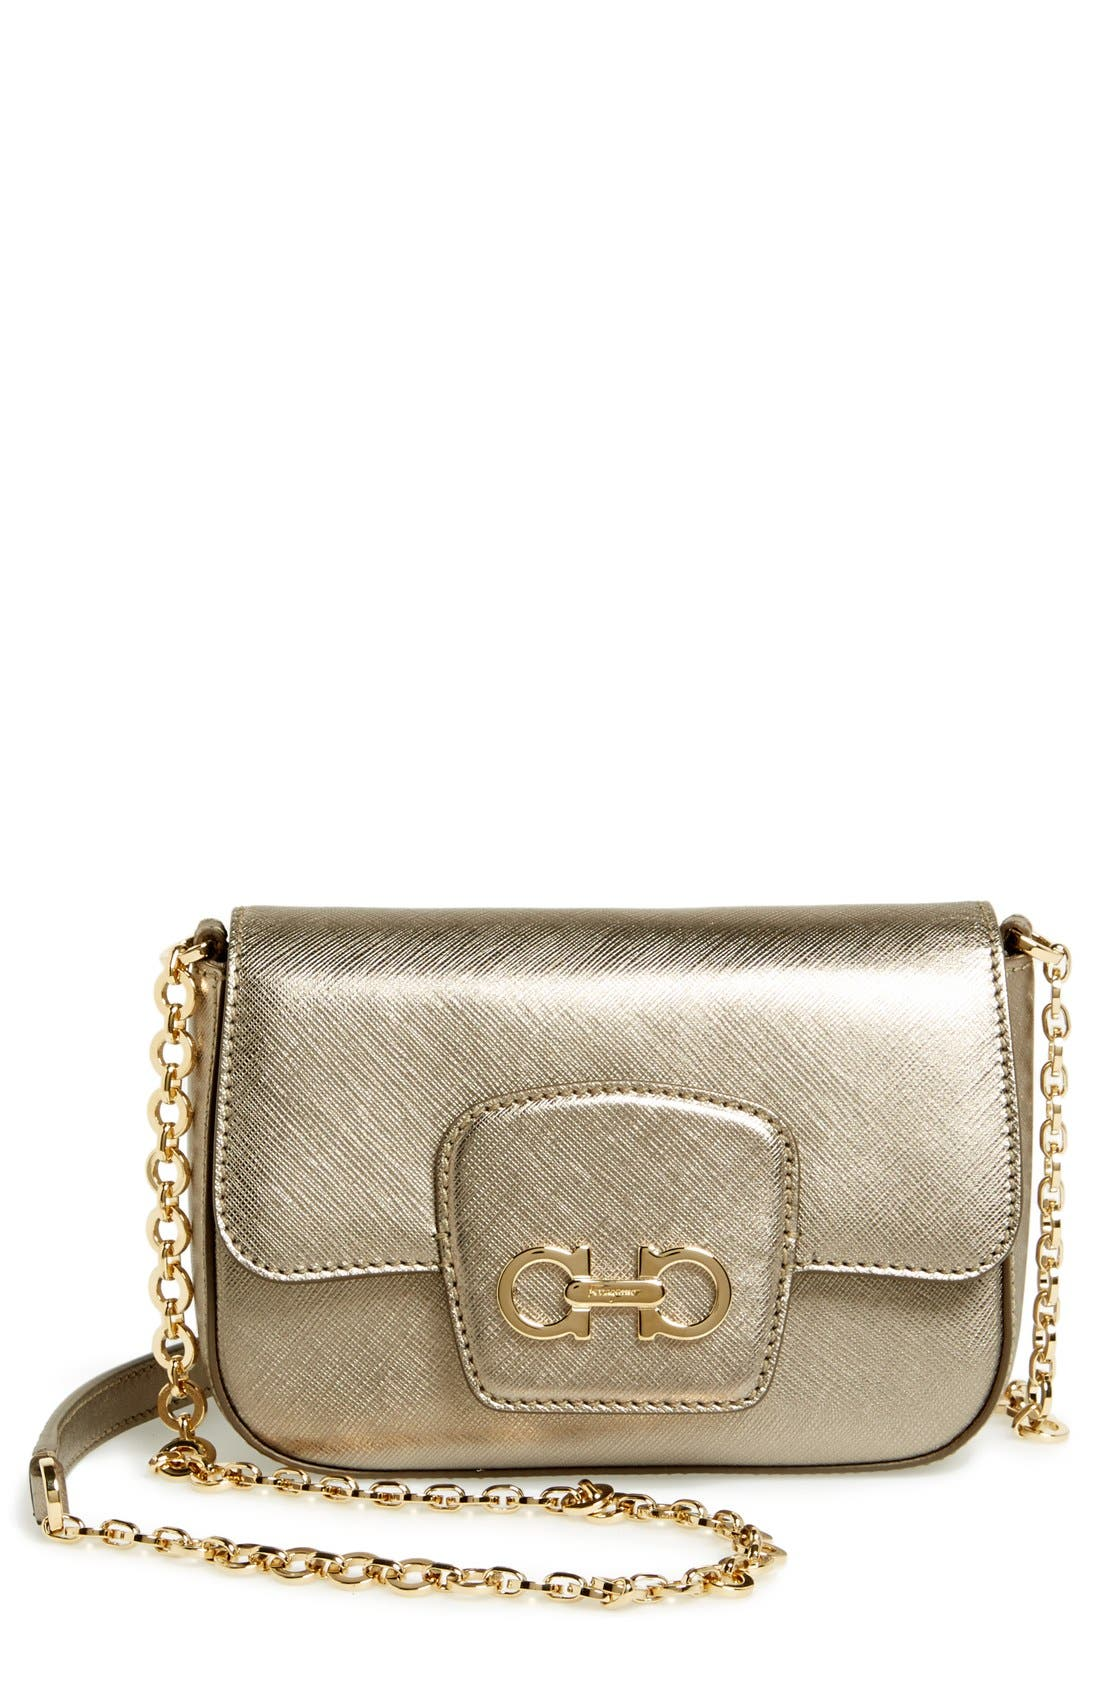 Alternate Image 1 Selected - Salvatore Ferragamo 'Paris Chain' Saffiano Leather Shoulder Bag